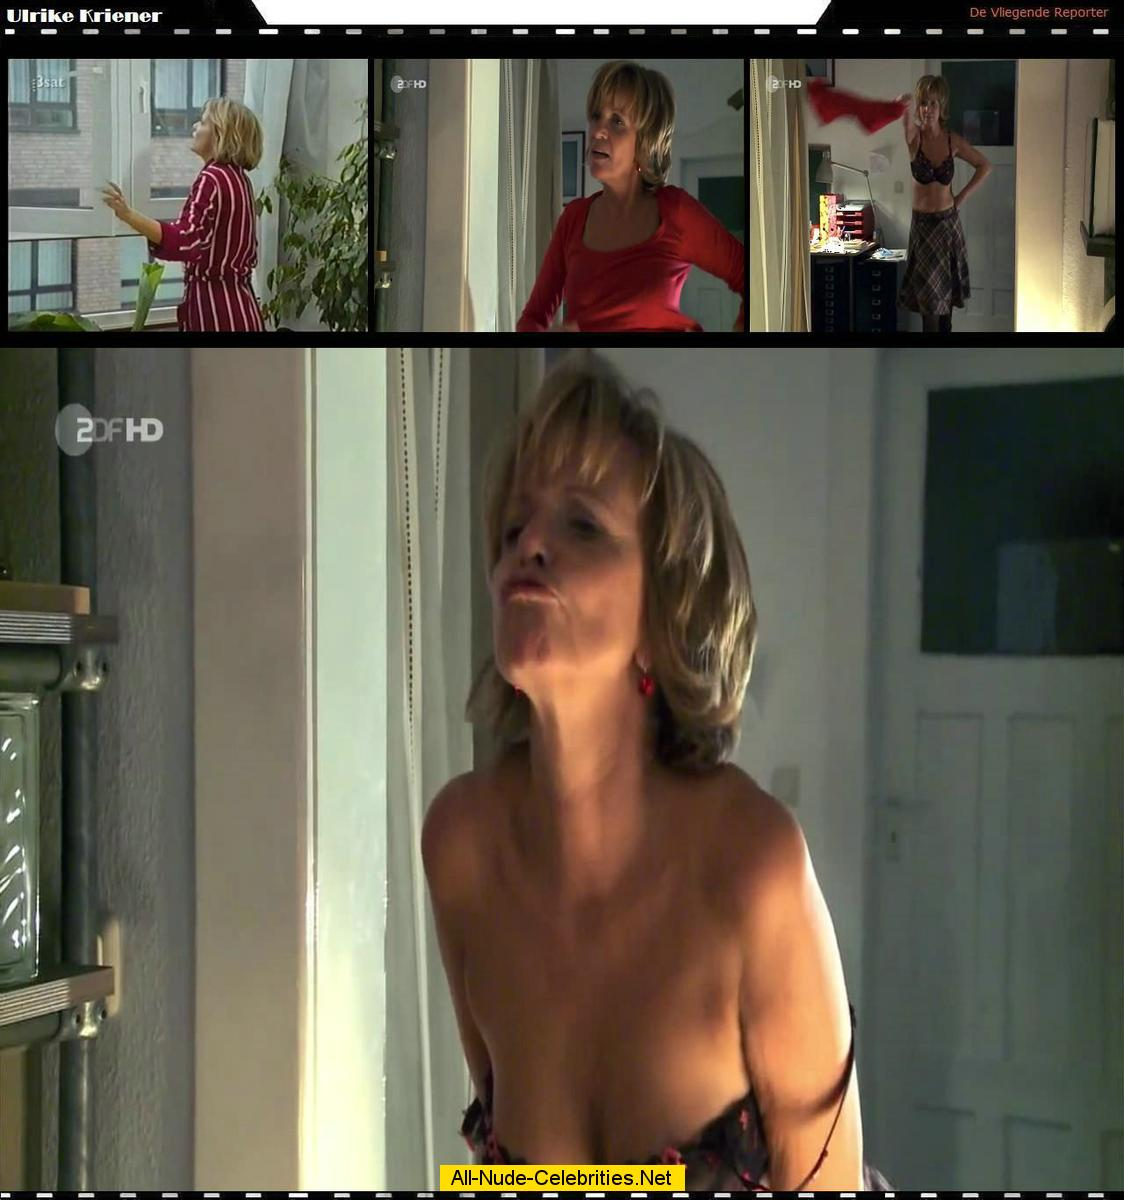 JOIN NOW AND DOWNLOAD YOUR FAVOURITE NUDE CELEBRITY MOVIES!: www.starsmaster.com/u/ulrike_kriener_01/topcelebs.html